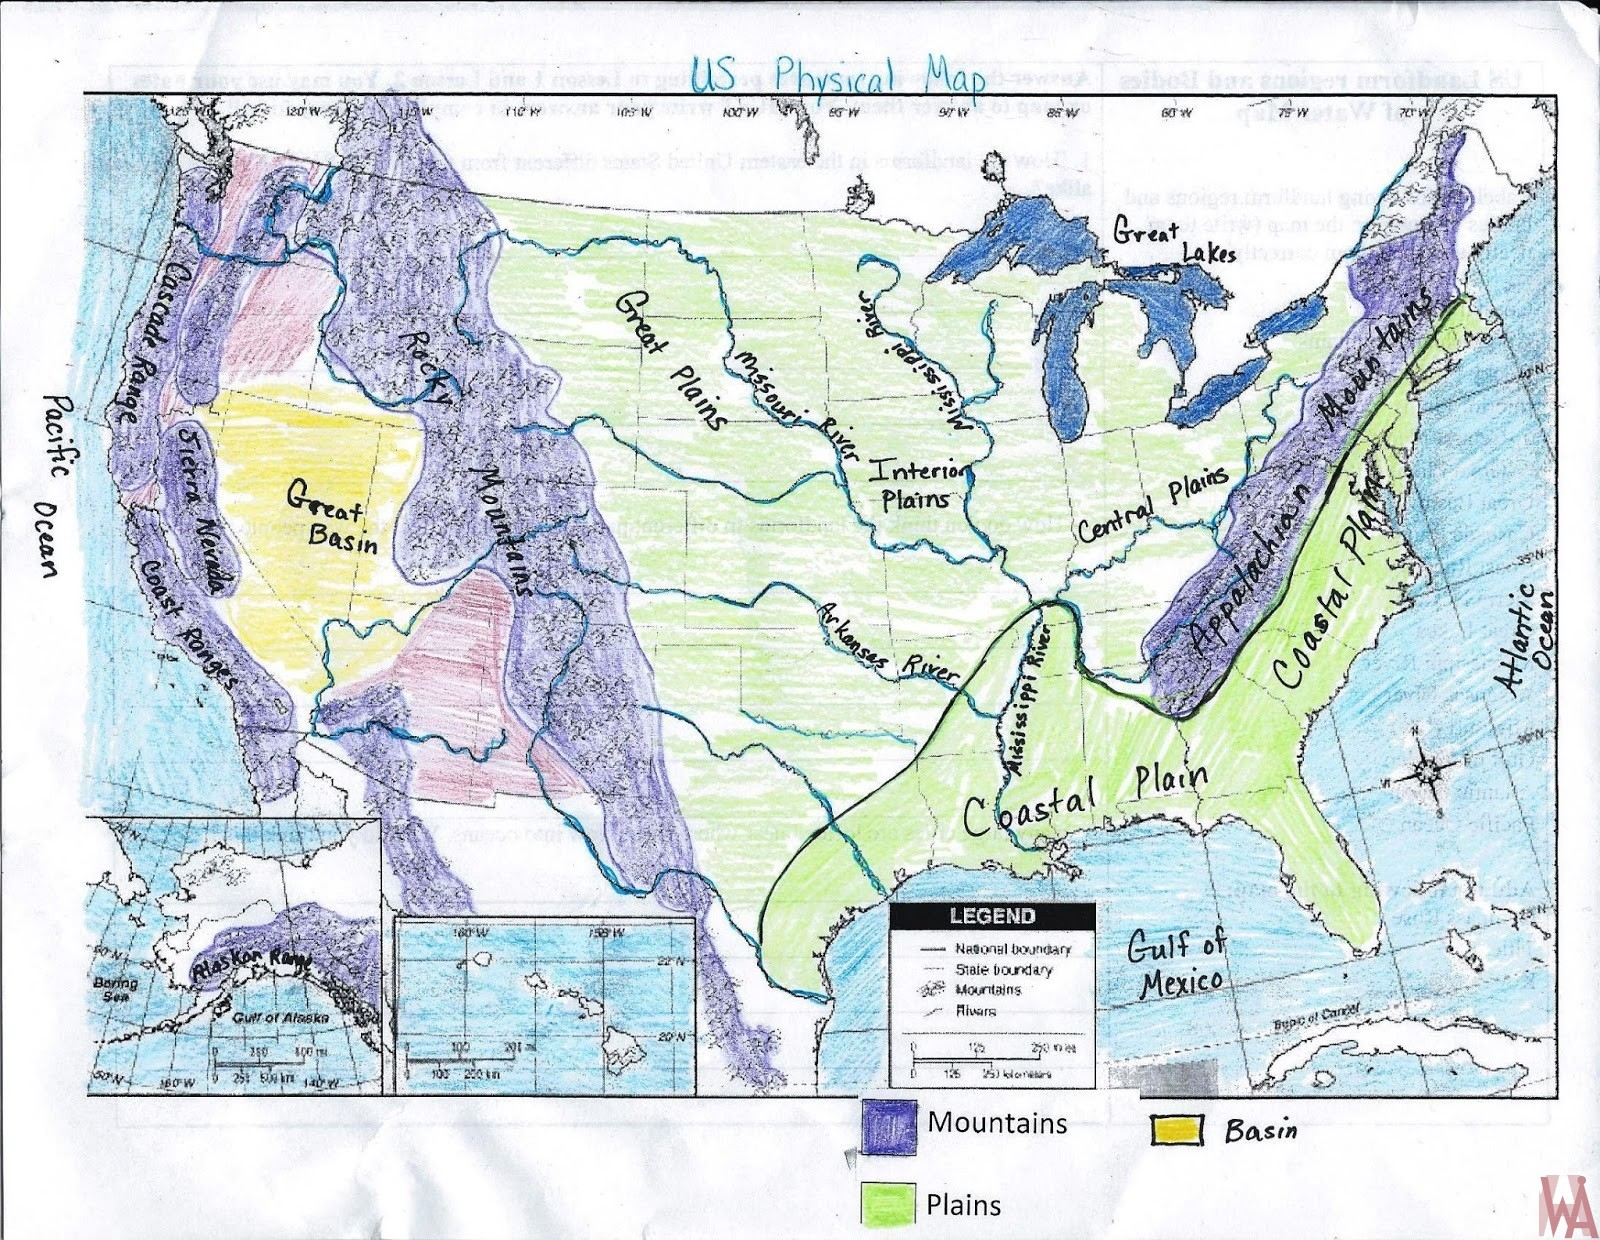 River Basin Map Of the USA | WhatsAnswer